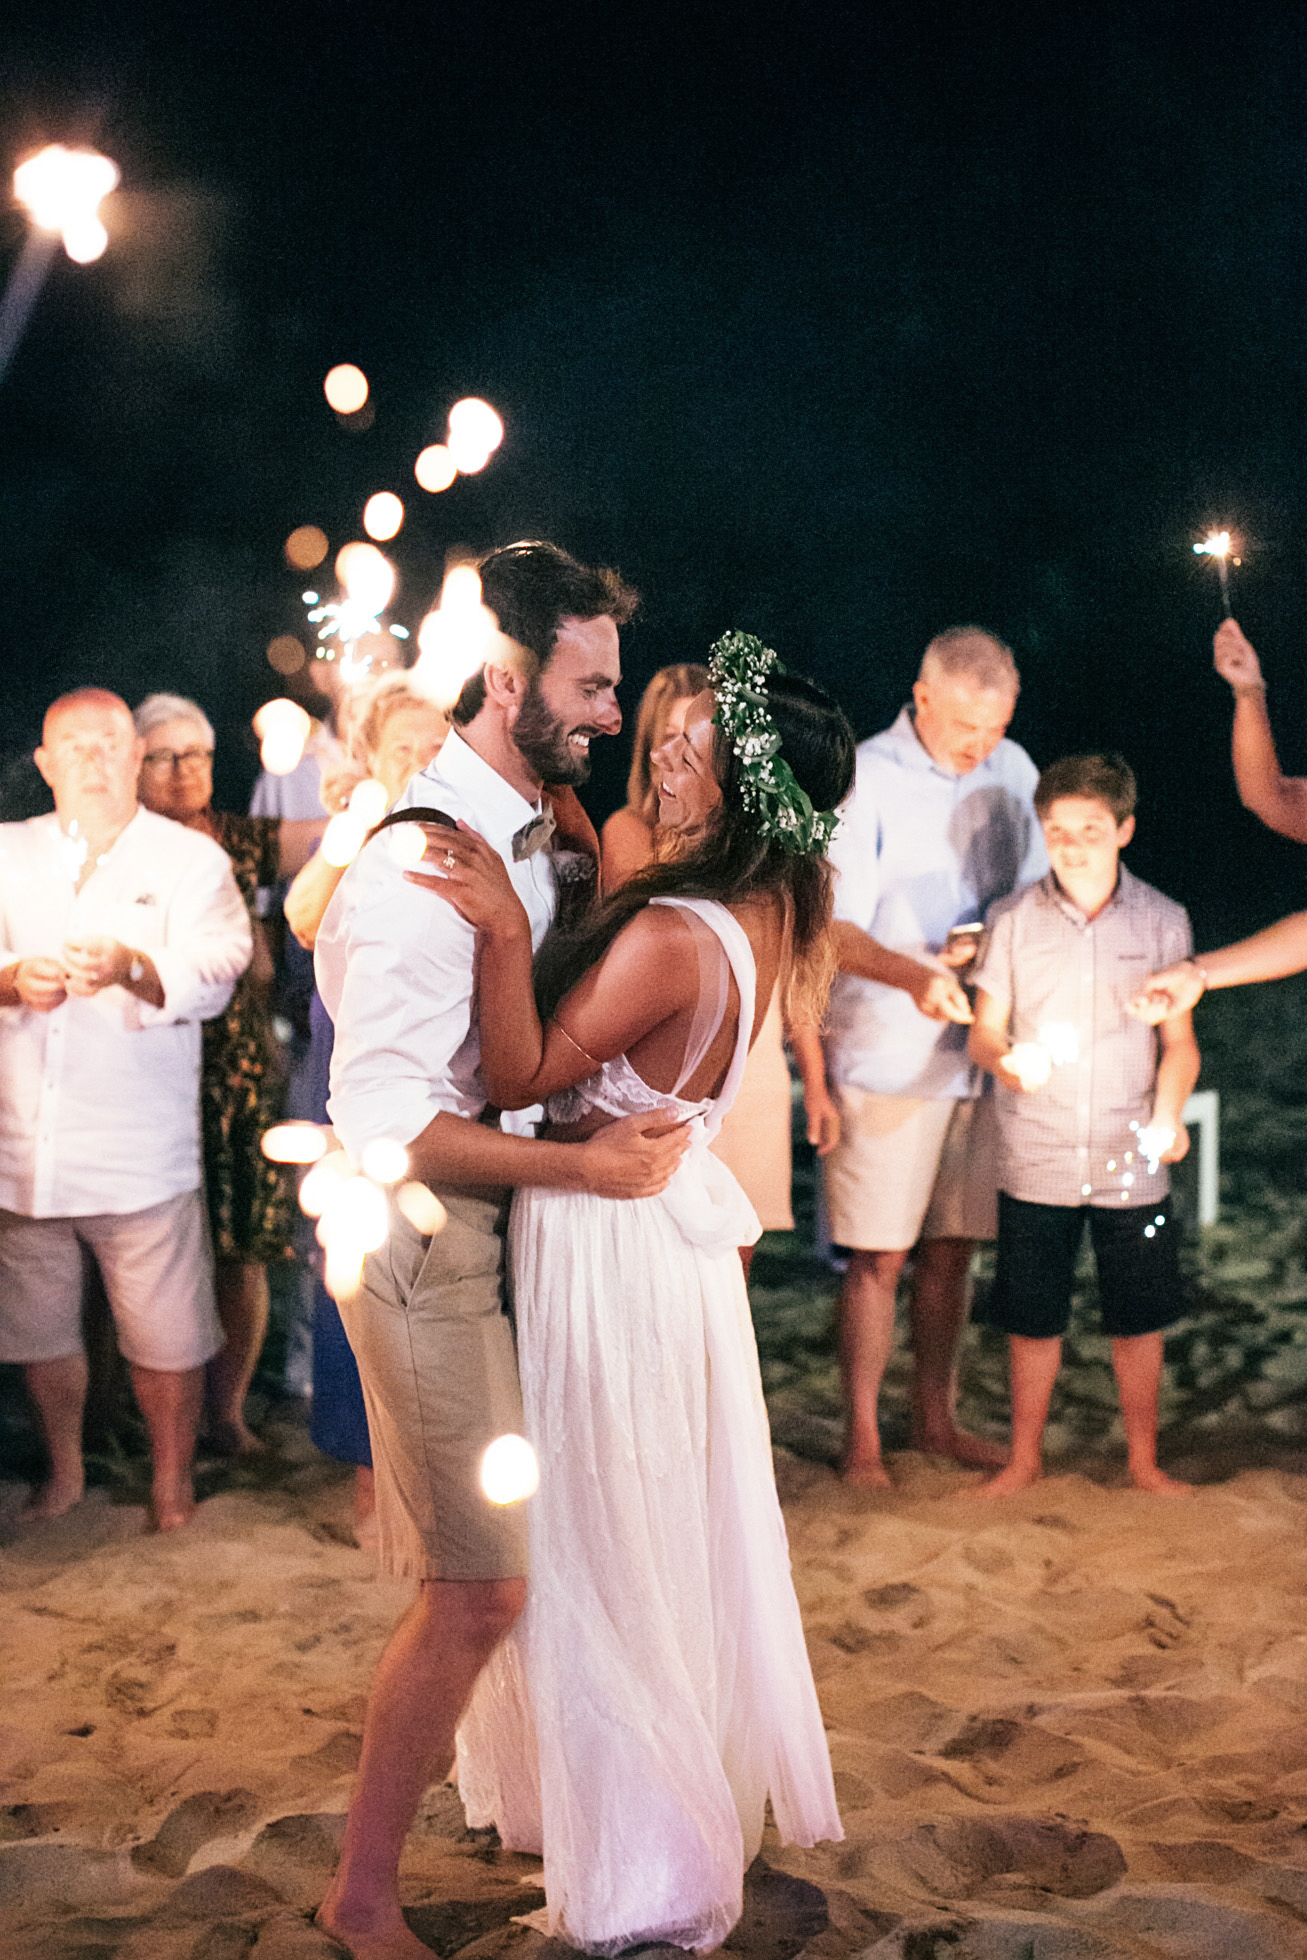 Professional photo of bride and groom during their first dance in the sand surrounded by happy wedding guests holding sparklers. The couple is dancing and laughing.